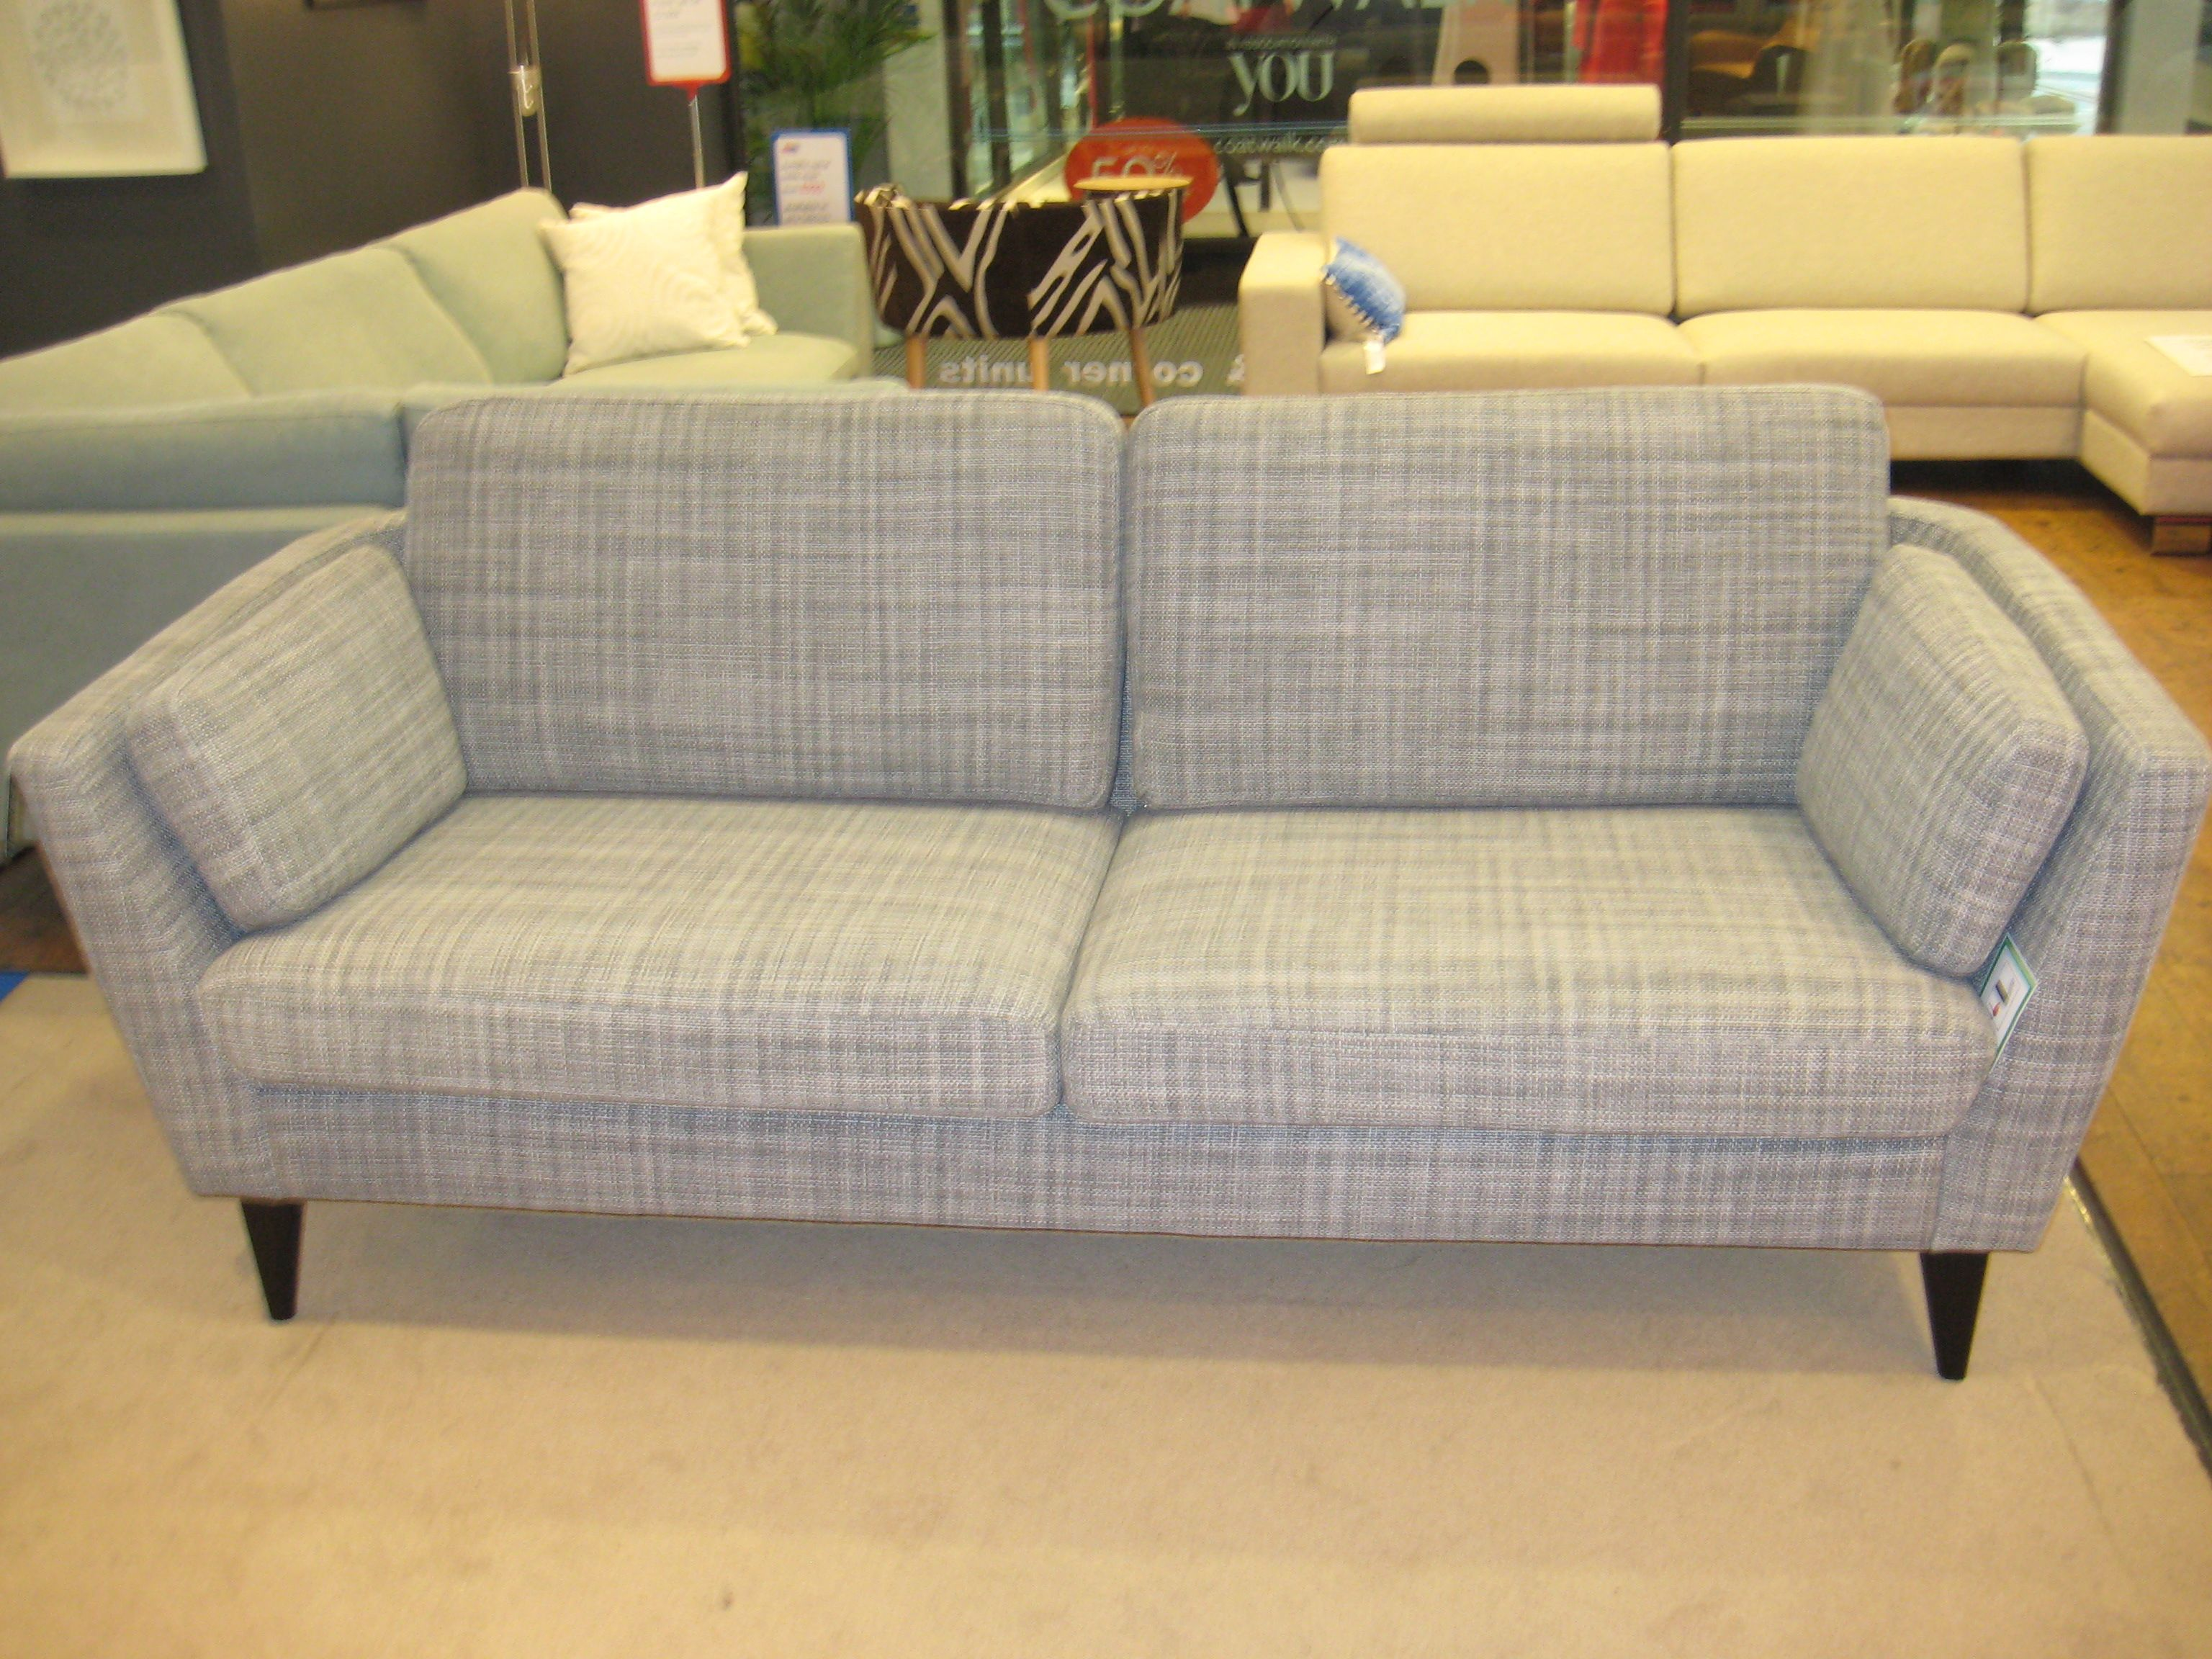 Retro Styling With Light Grey Check Fabric This Jasmine Sofa Is Available In Three Widths